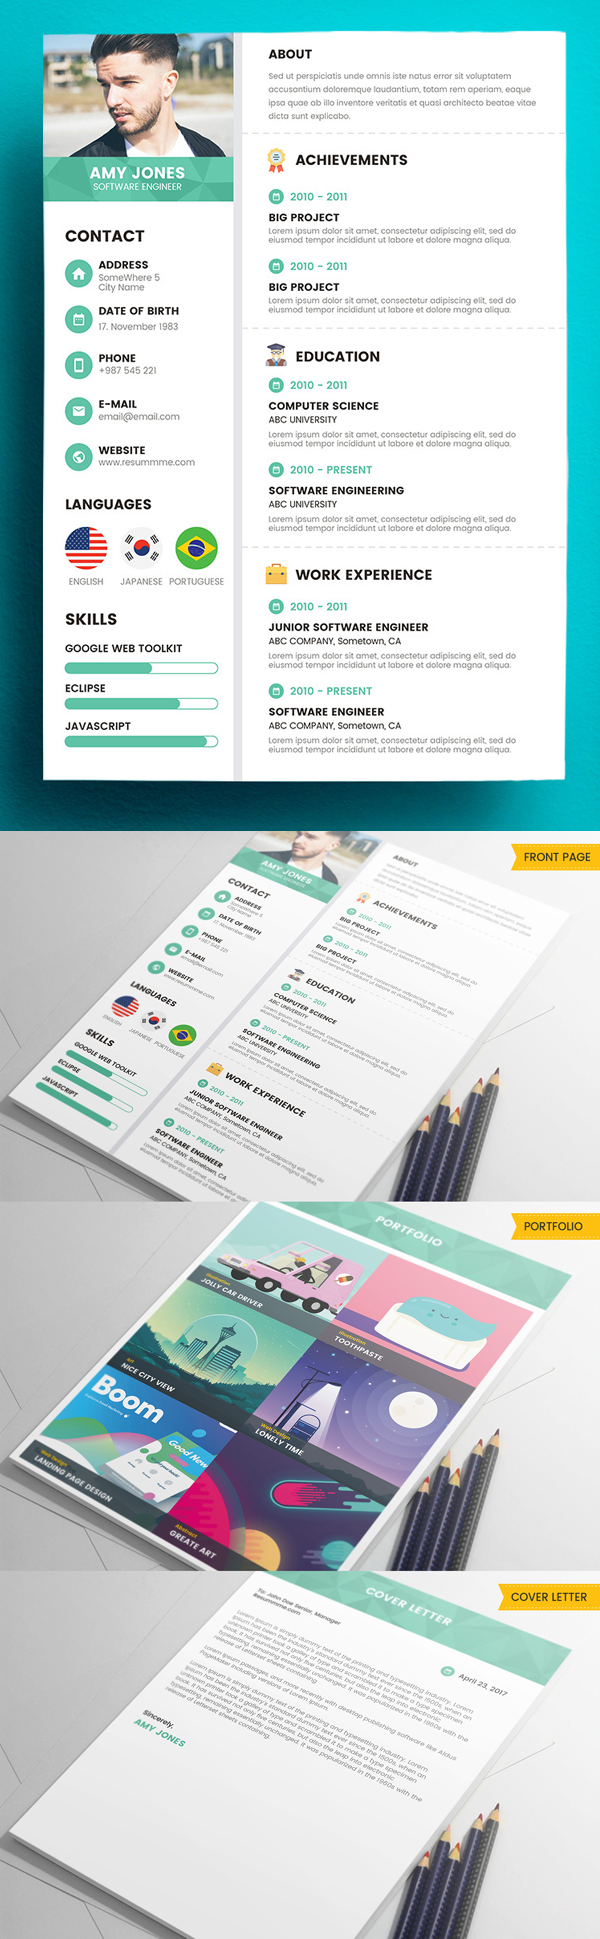 50 Free Resume Templates: Best Of 2018 -  9